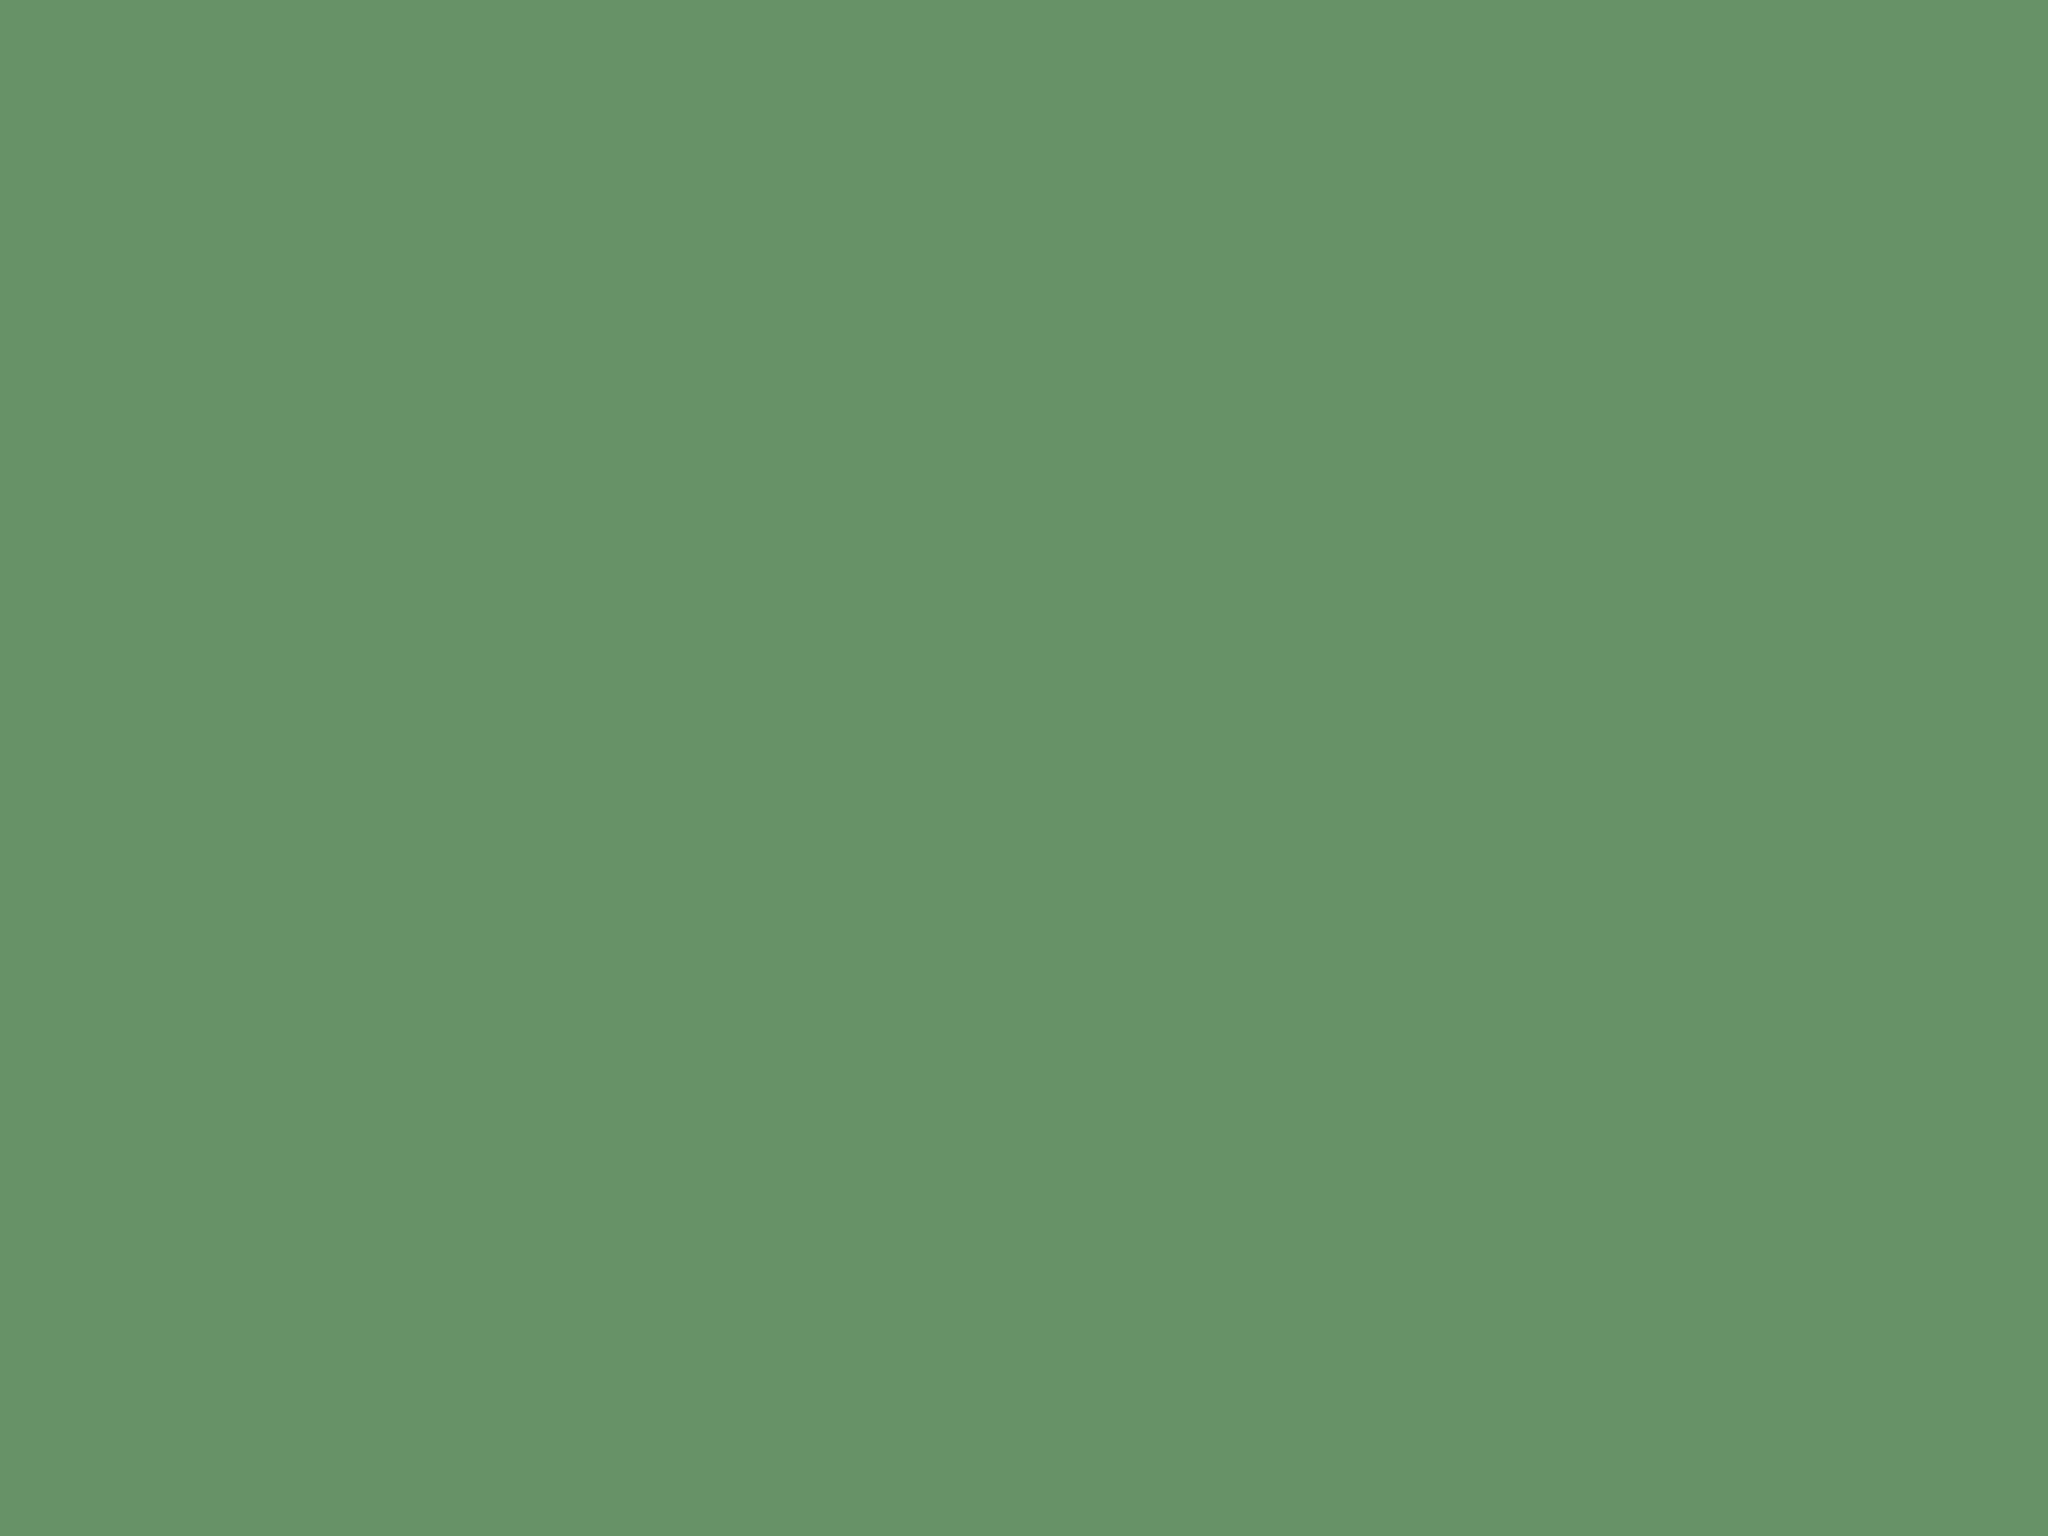 2048x1536 Russian Green Solid Color Background